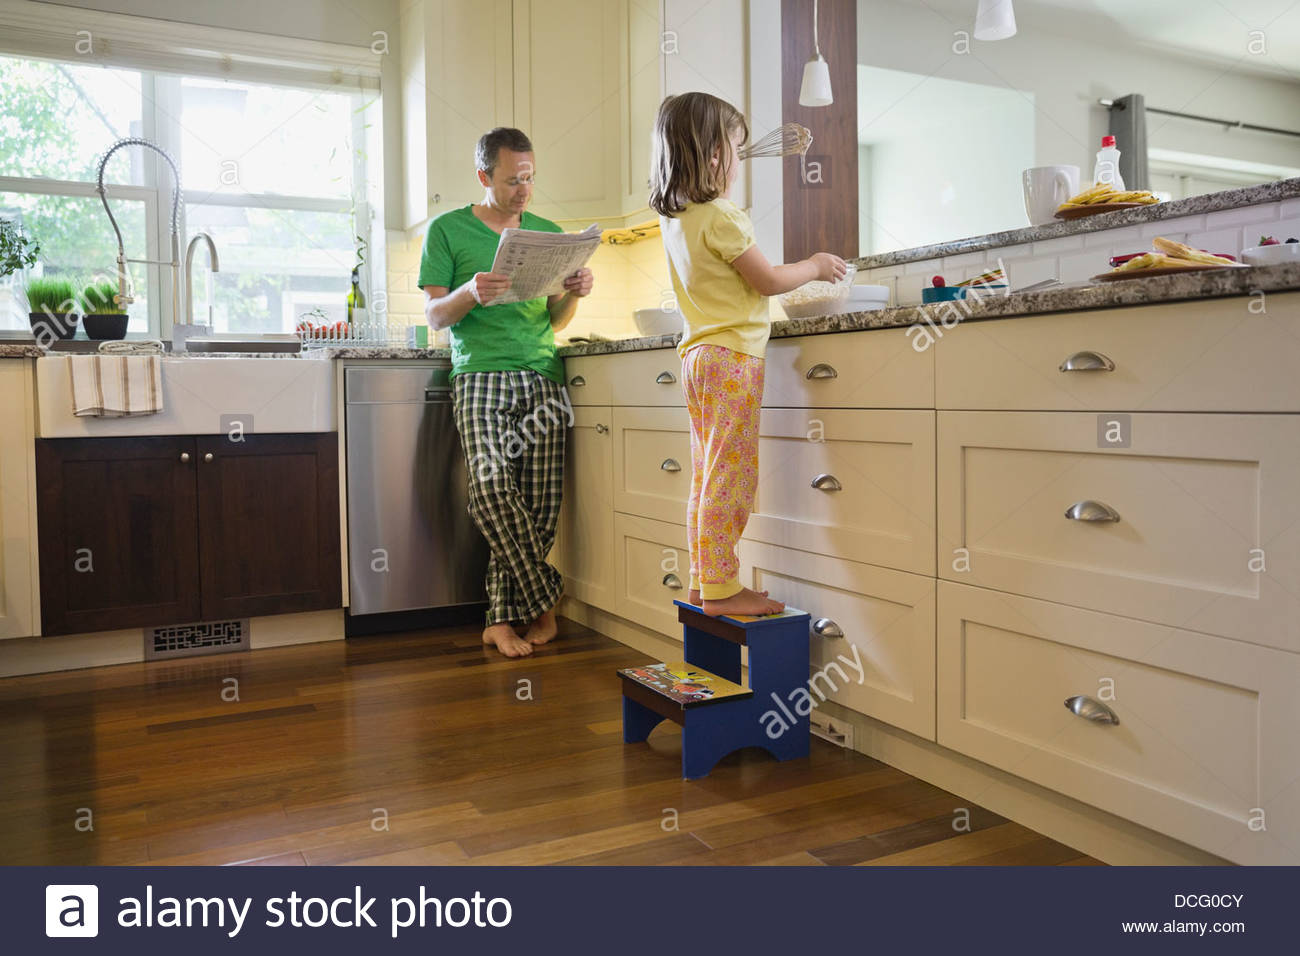 Family morning in the kitchen - Stock Image